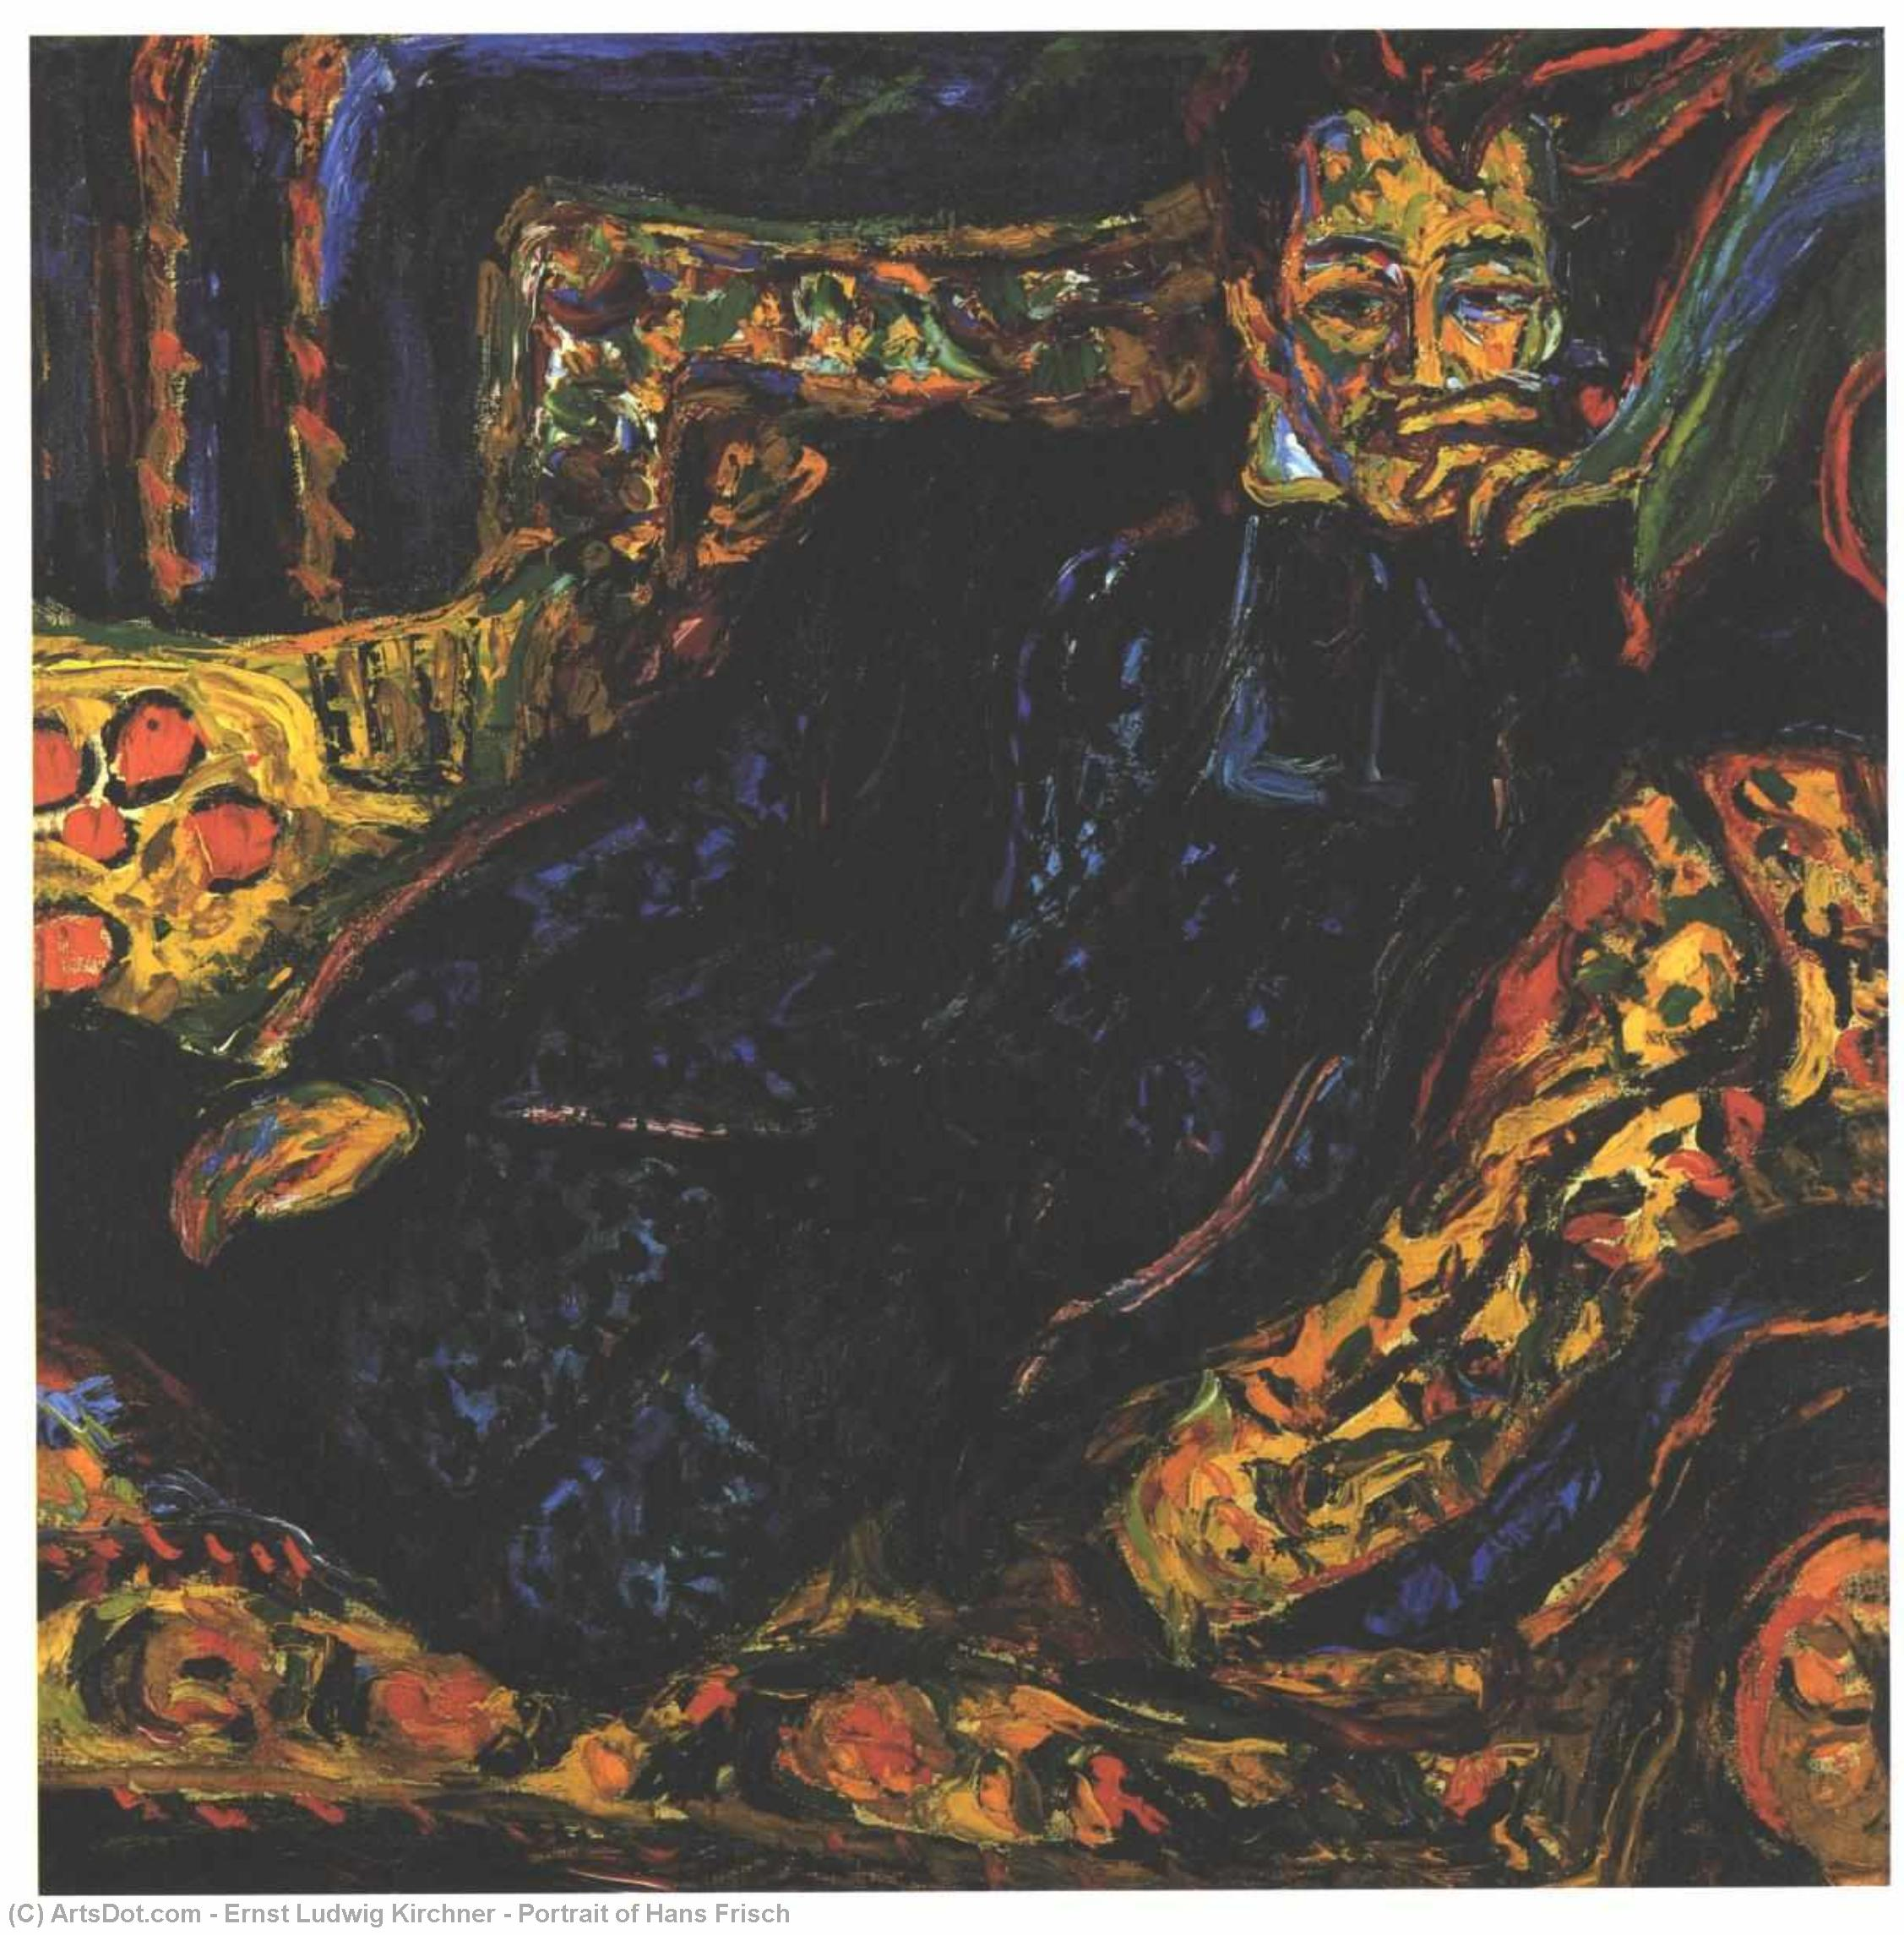 Wikioo.org - The Encyclopedia of Fine Arts - Painting, Artwork by Ernst Ludwig Kirchner - Portrait of Hans Frisch